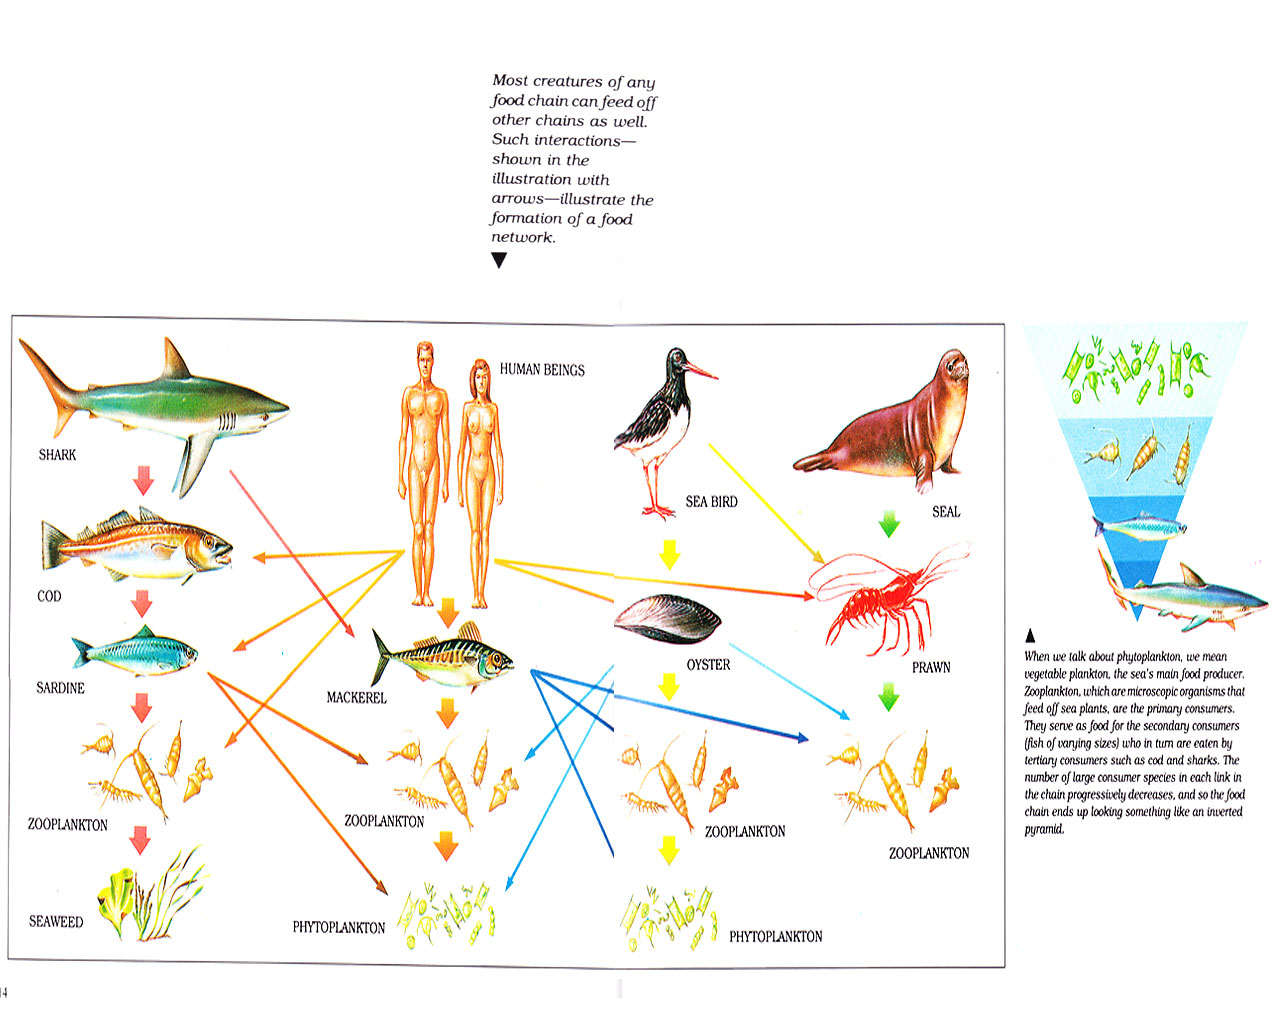 pacific ocean food web diagram xentec hid wiring 9007 turtle chain bony fish elsavadorla